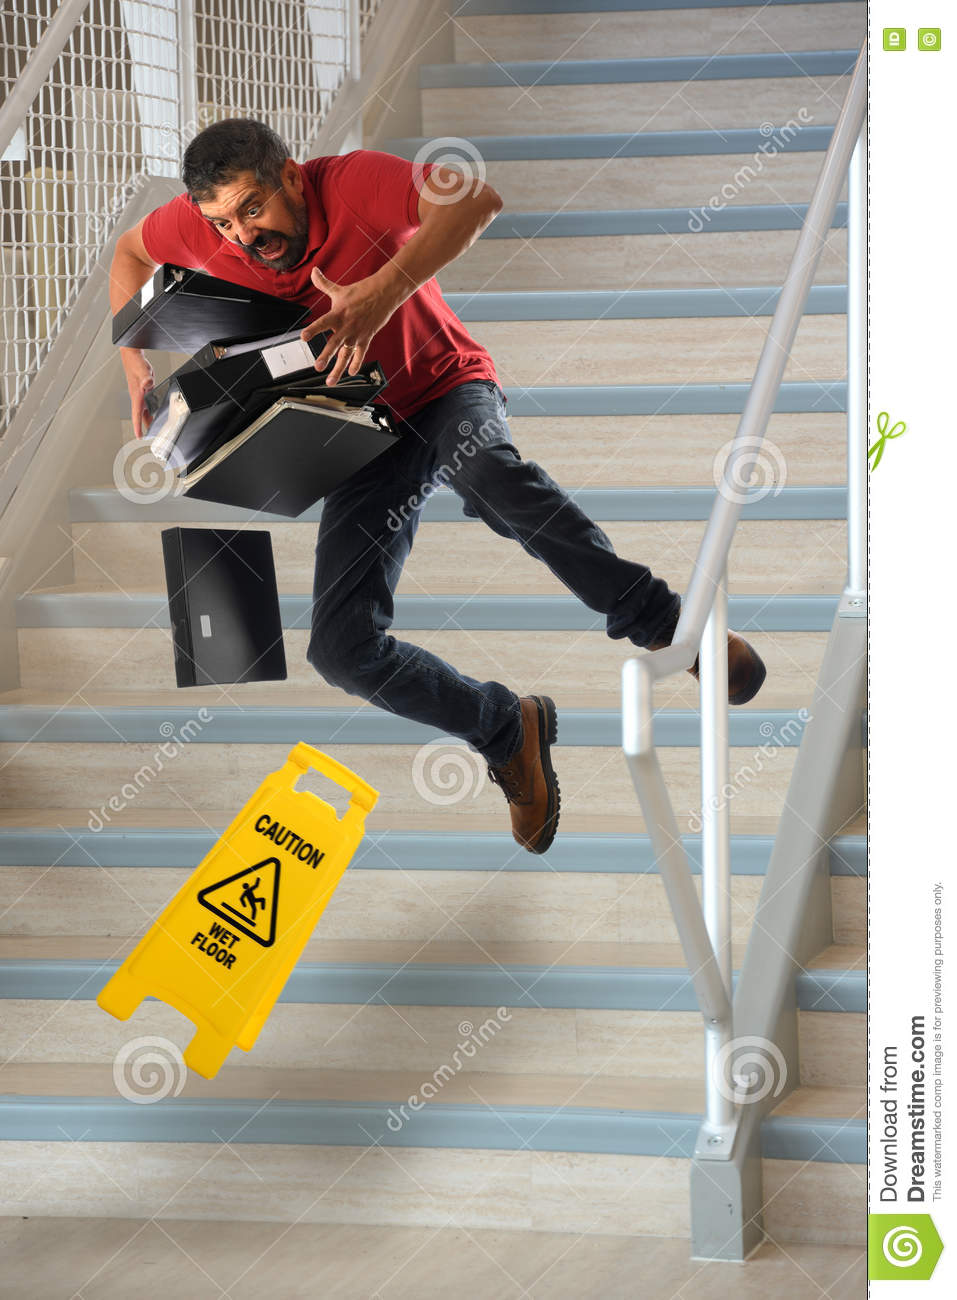 Worker Falling on Stairs